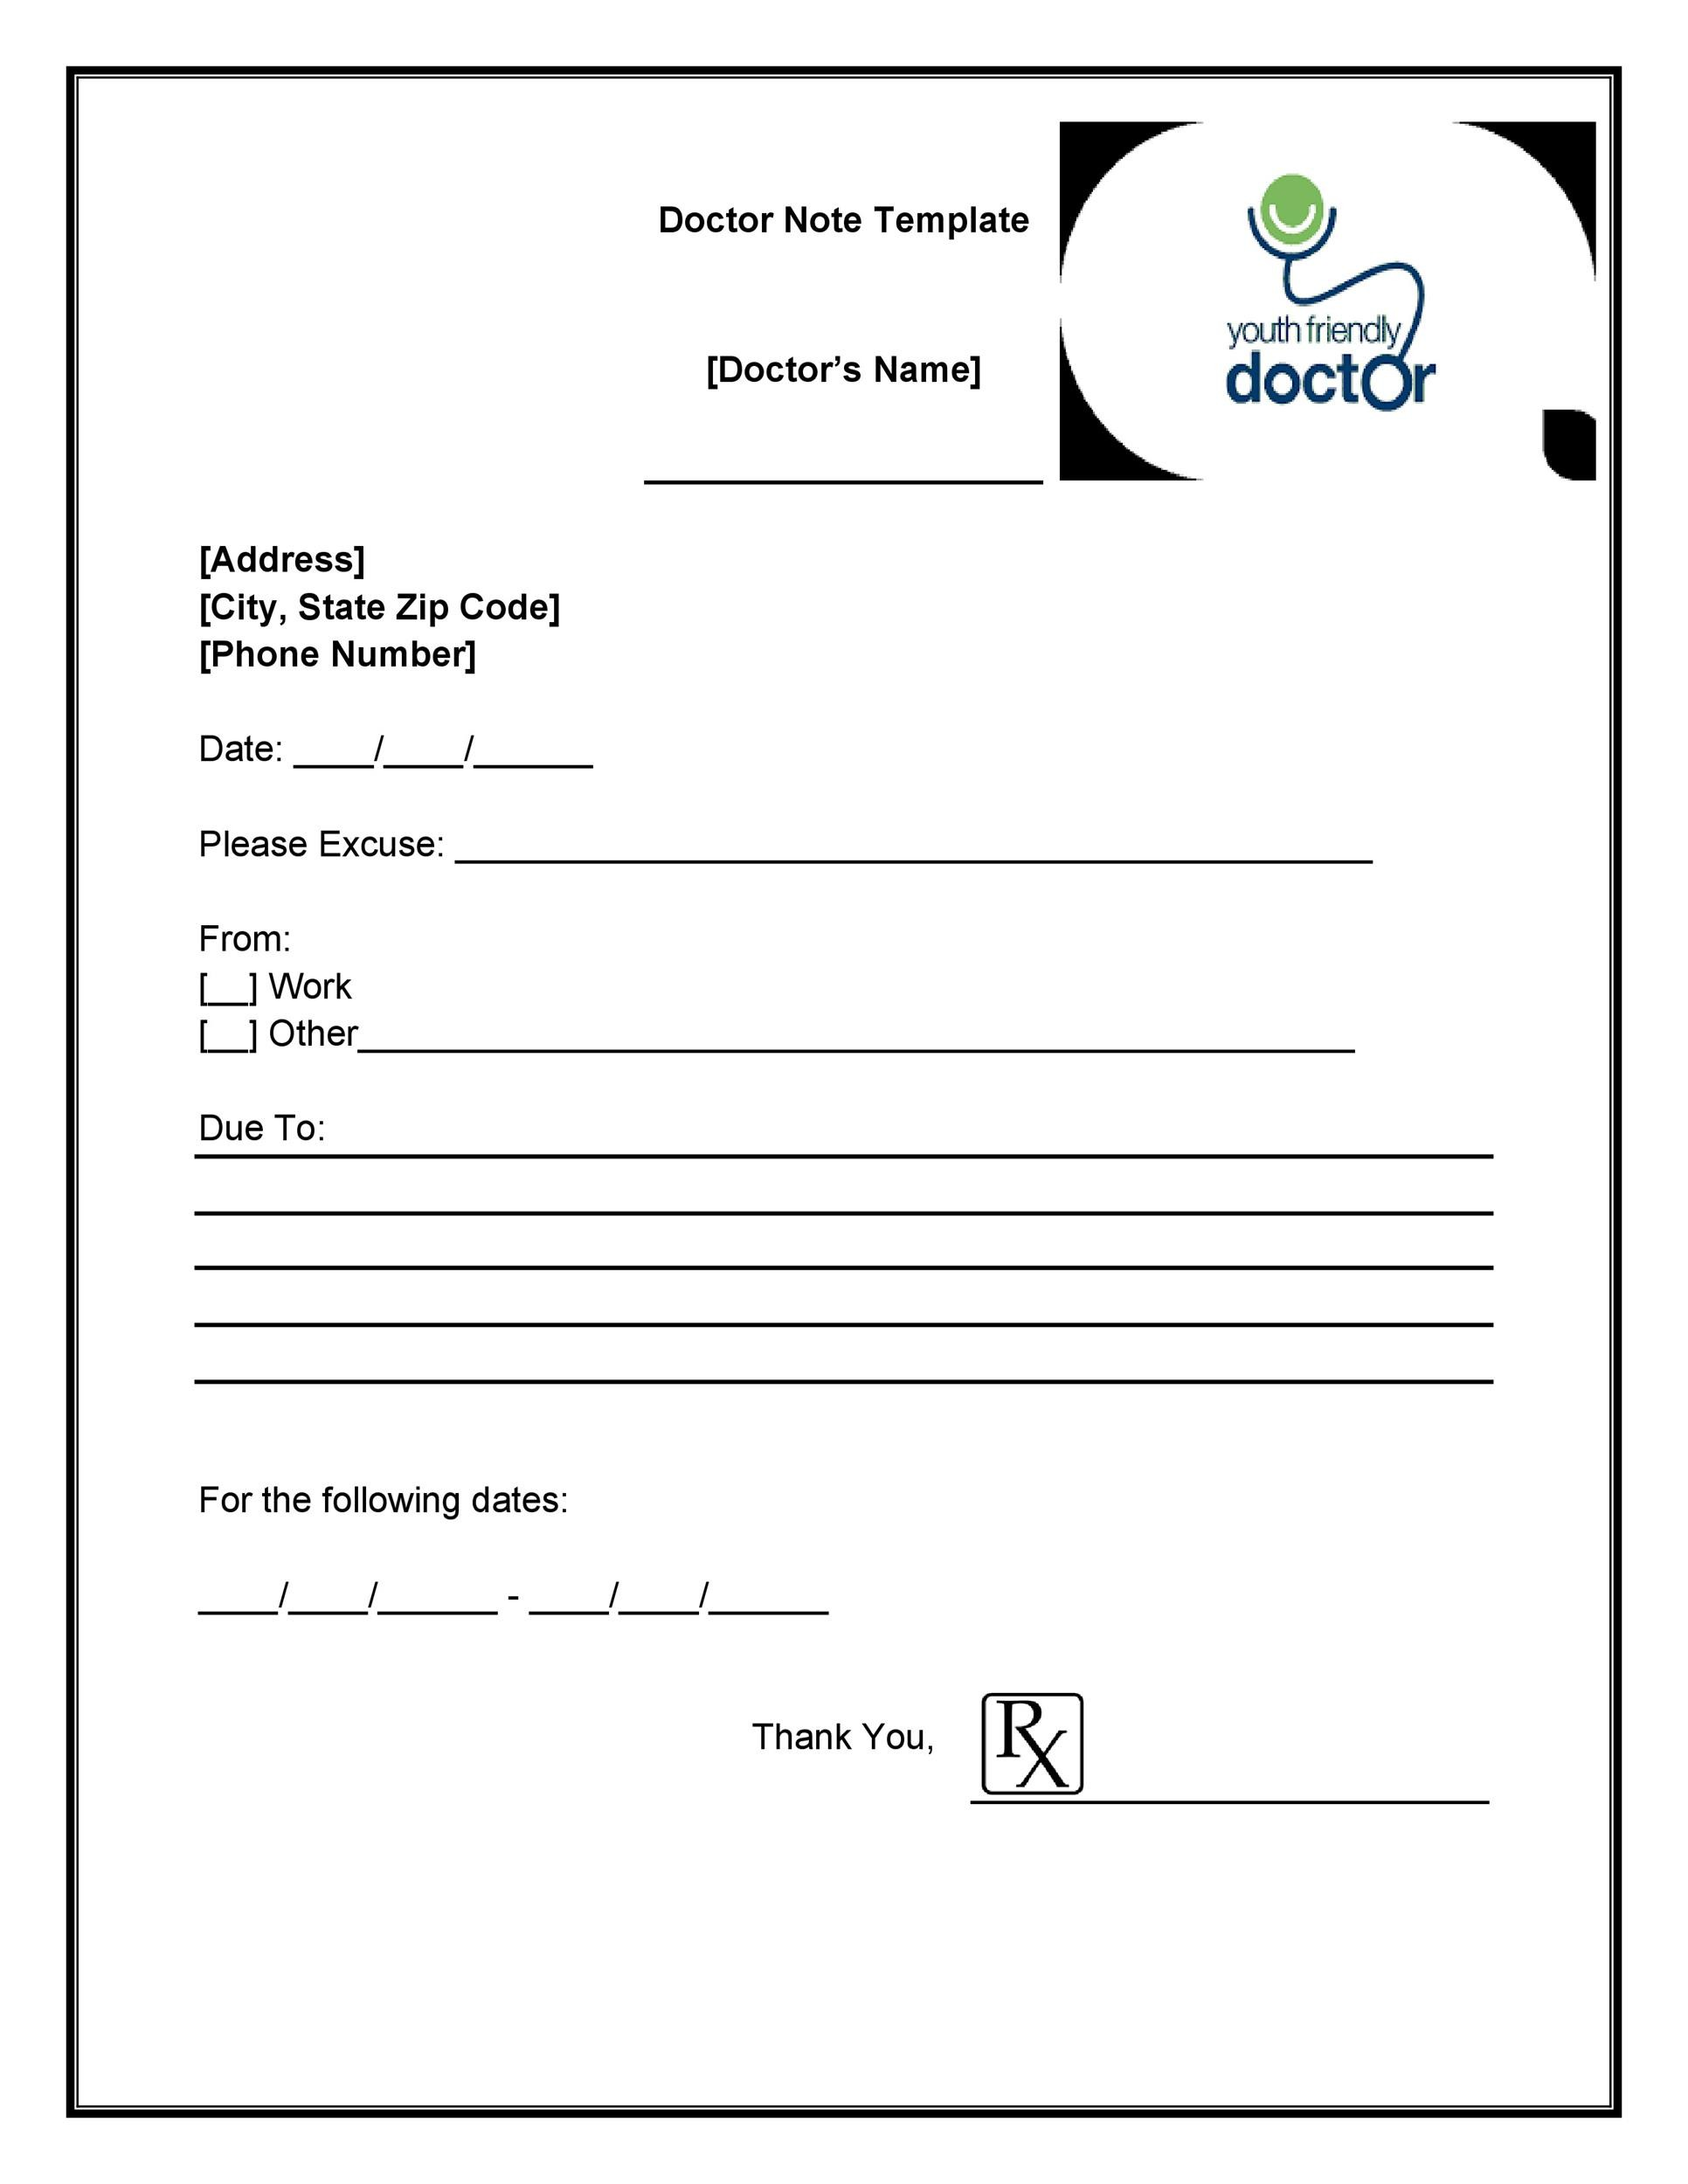 25 Free Doctor Note Excuse Templates Template Lab – Doctor Note